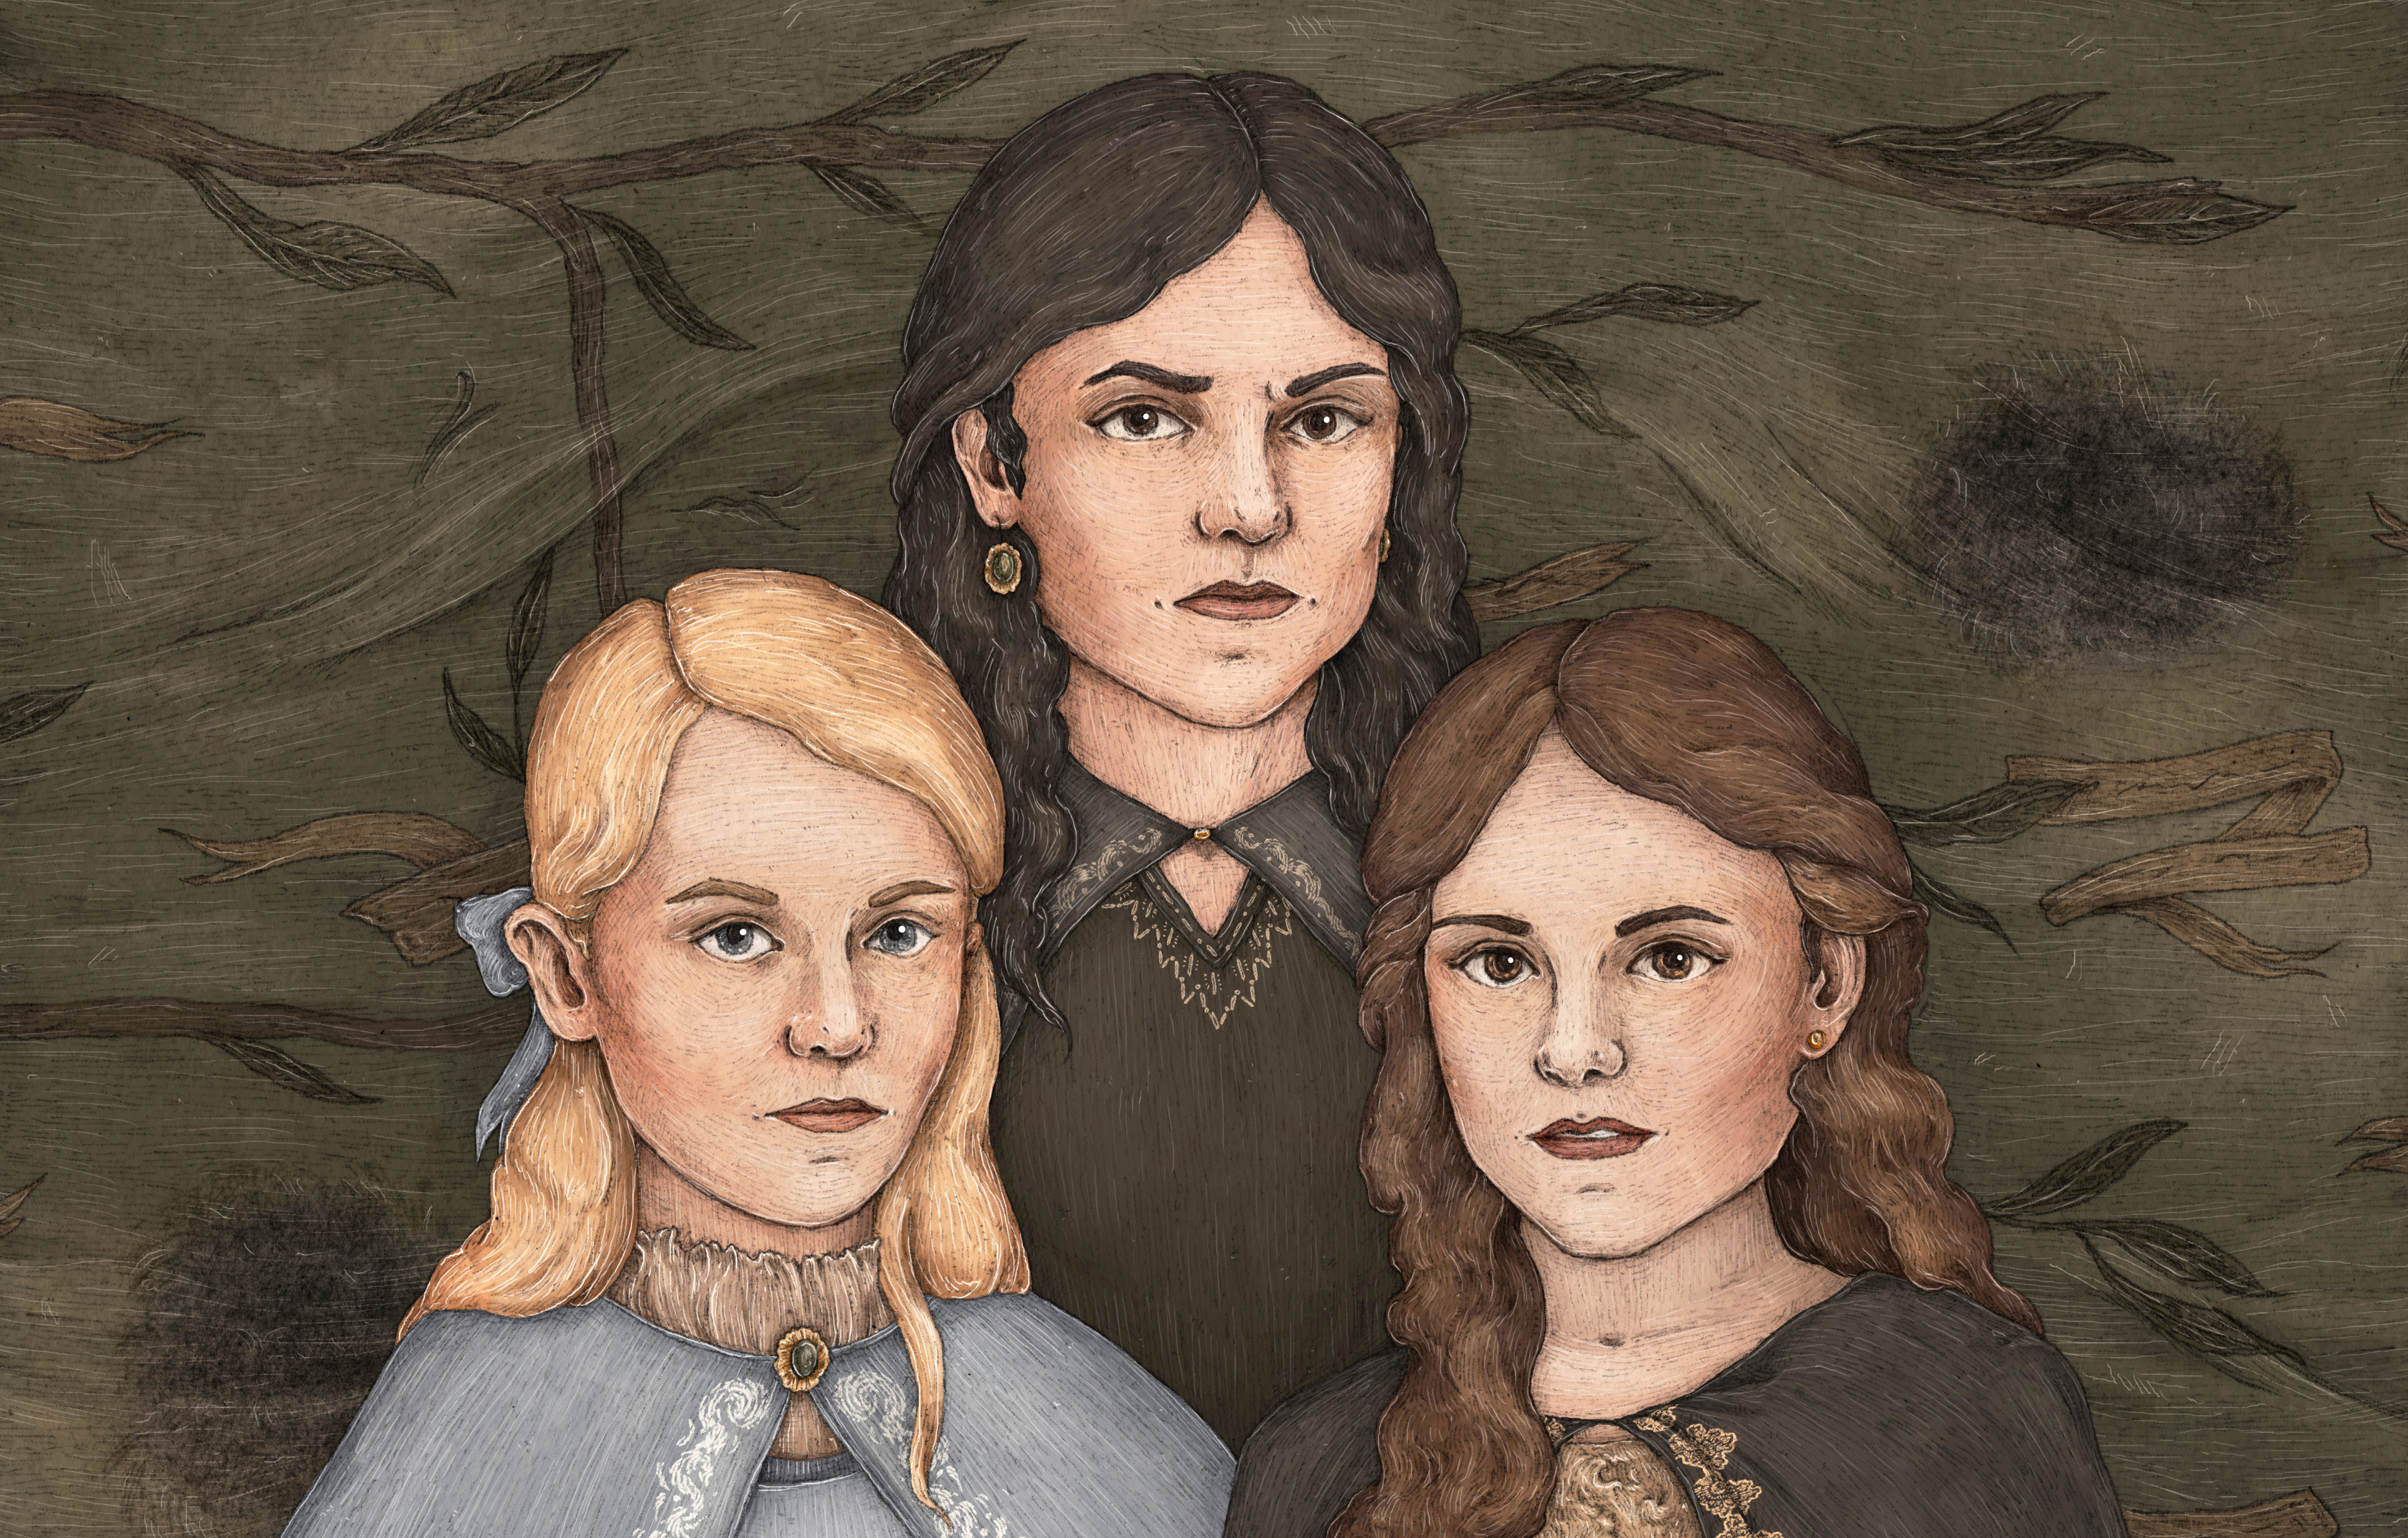 Andromeda, Narcissa and Bellatrix – a tale of three sisters